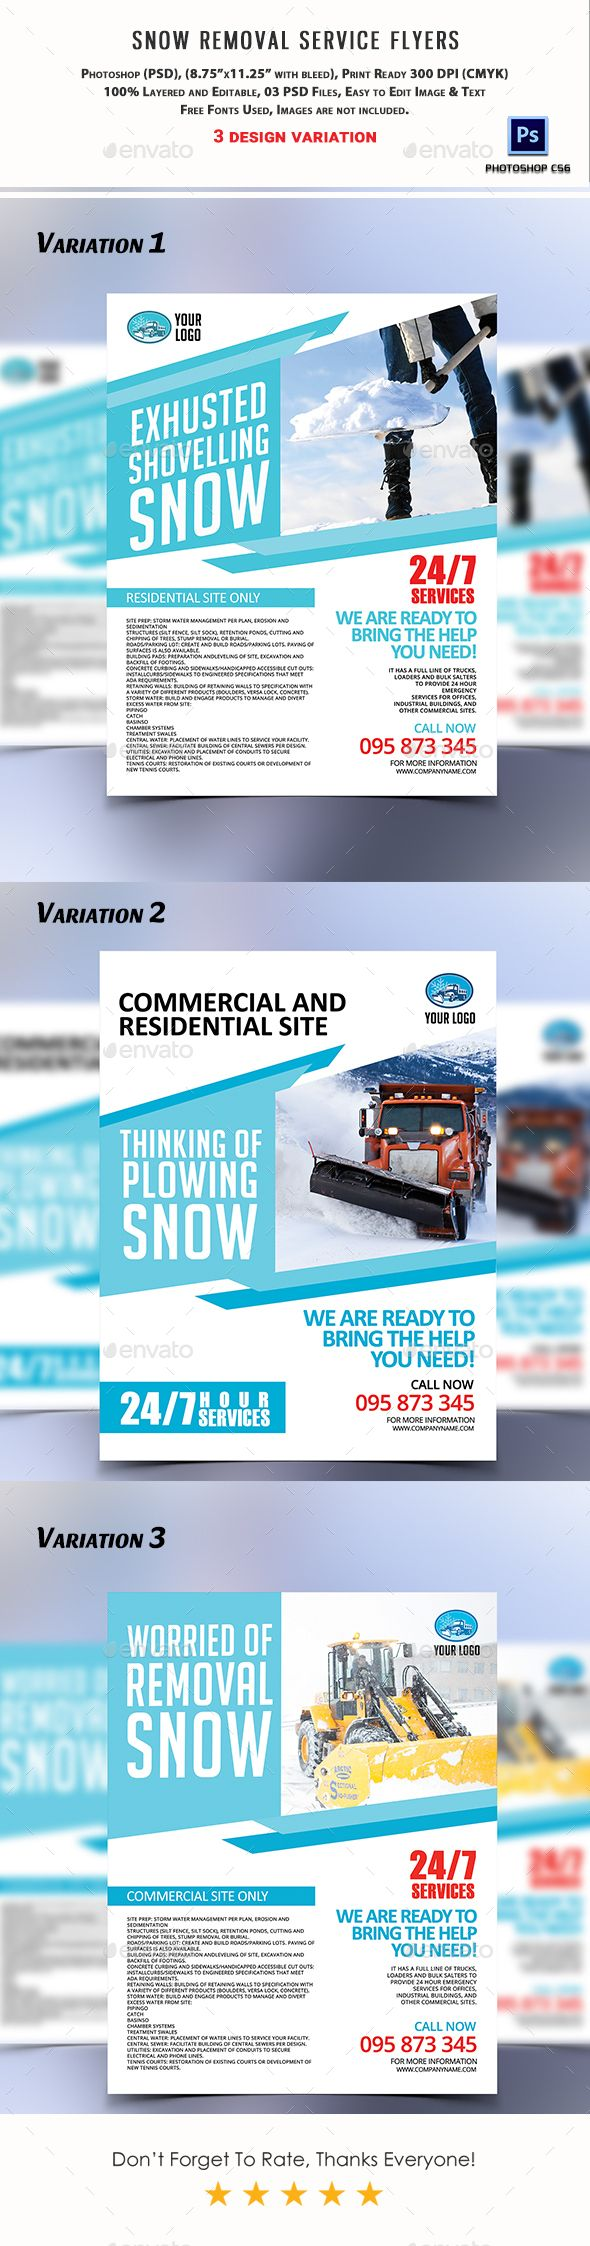 Snow Removal Service Flyers Snow Removal Services Removal - Snow plowing flyer template